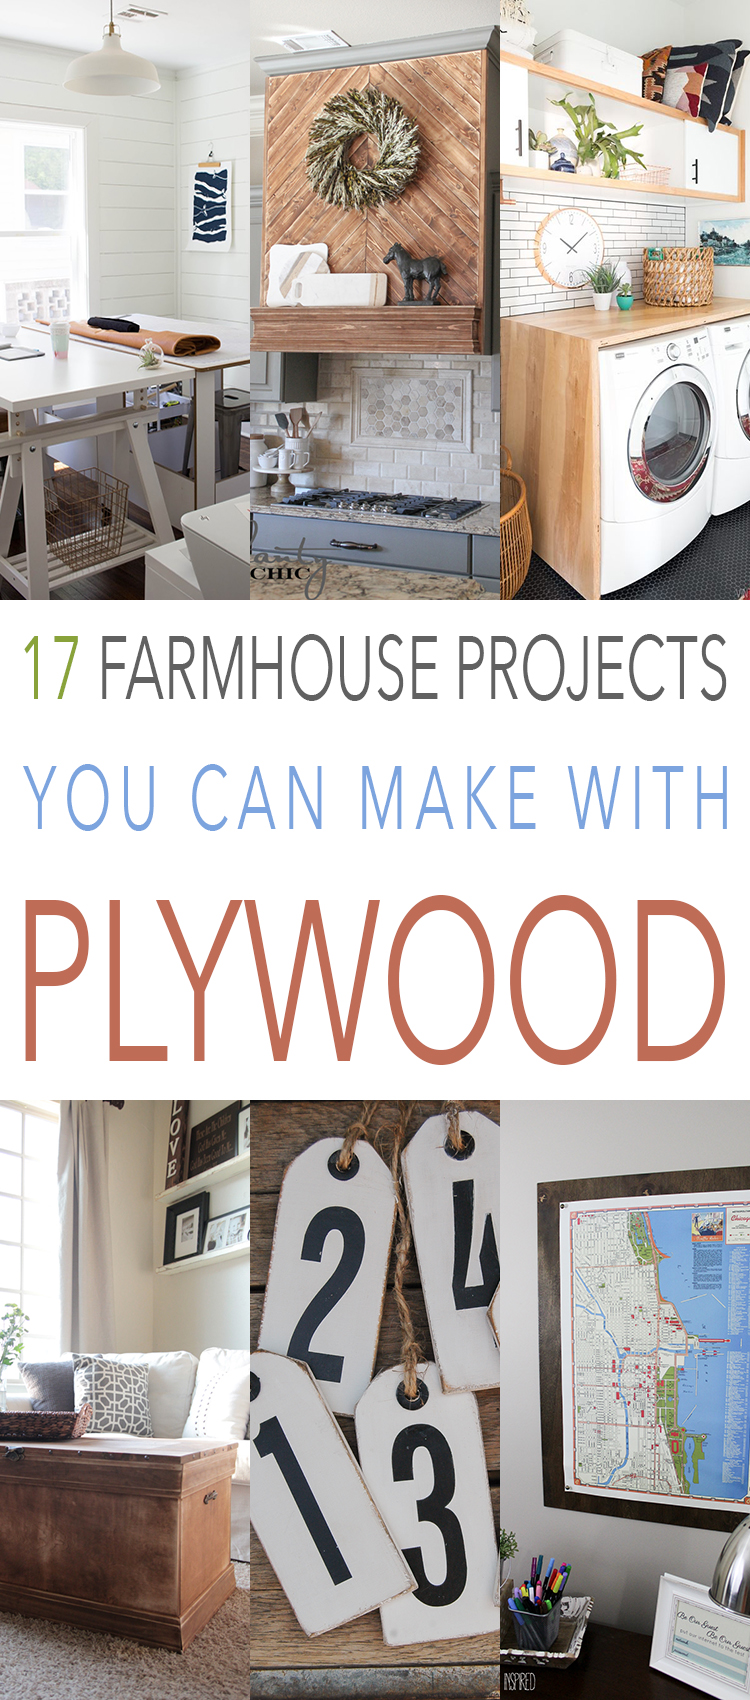 Check out these farmhouse projects made with plywood to spruce up your home.